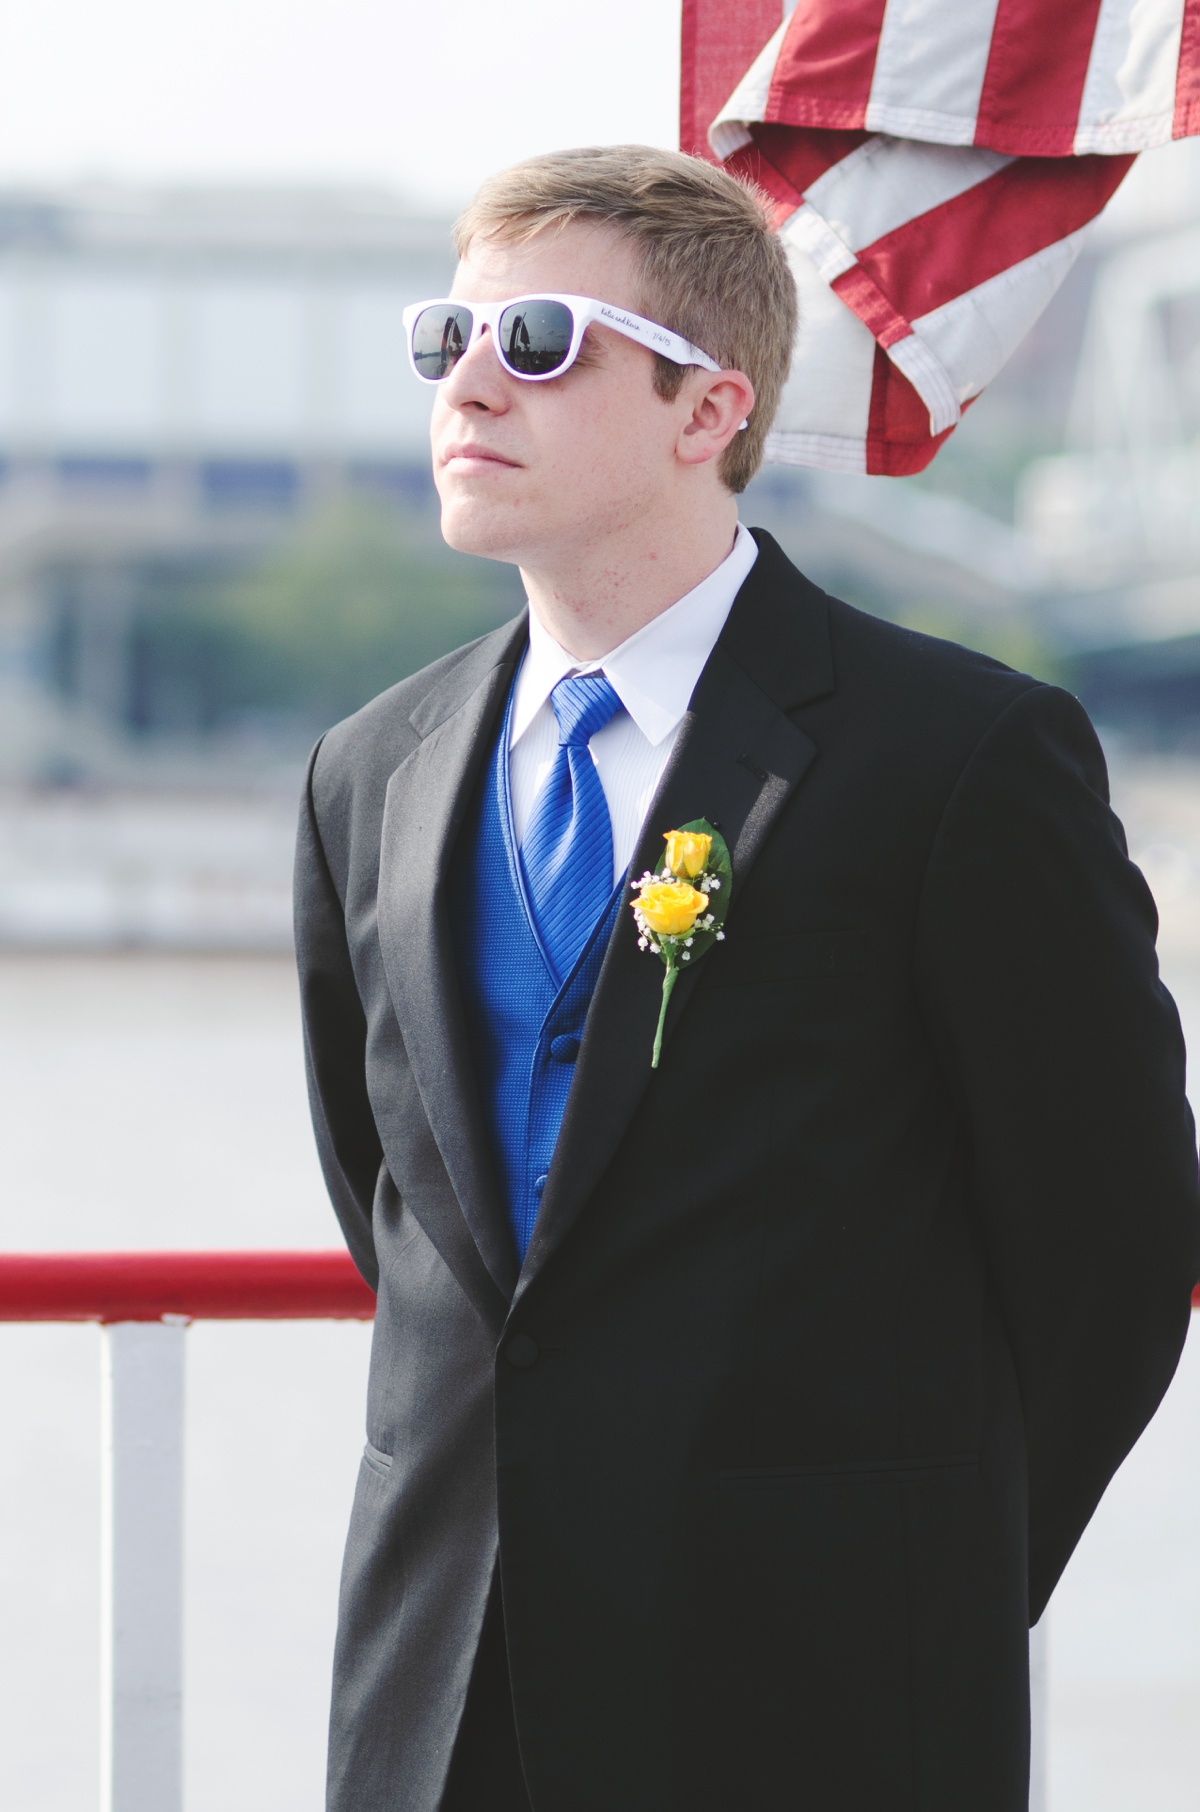 b&briverboatwedding (21)